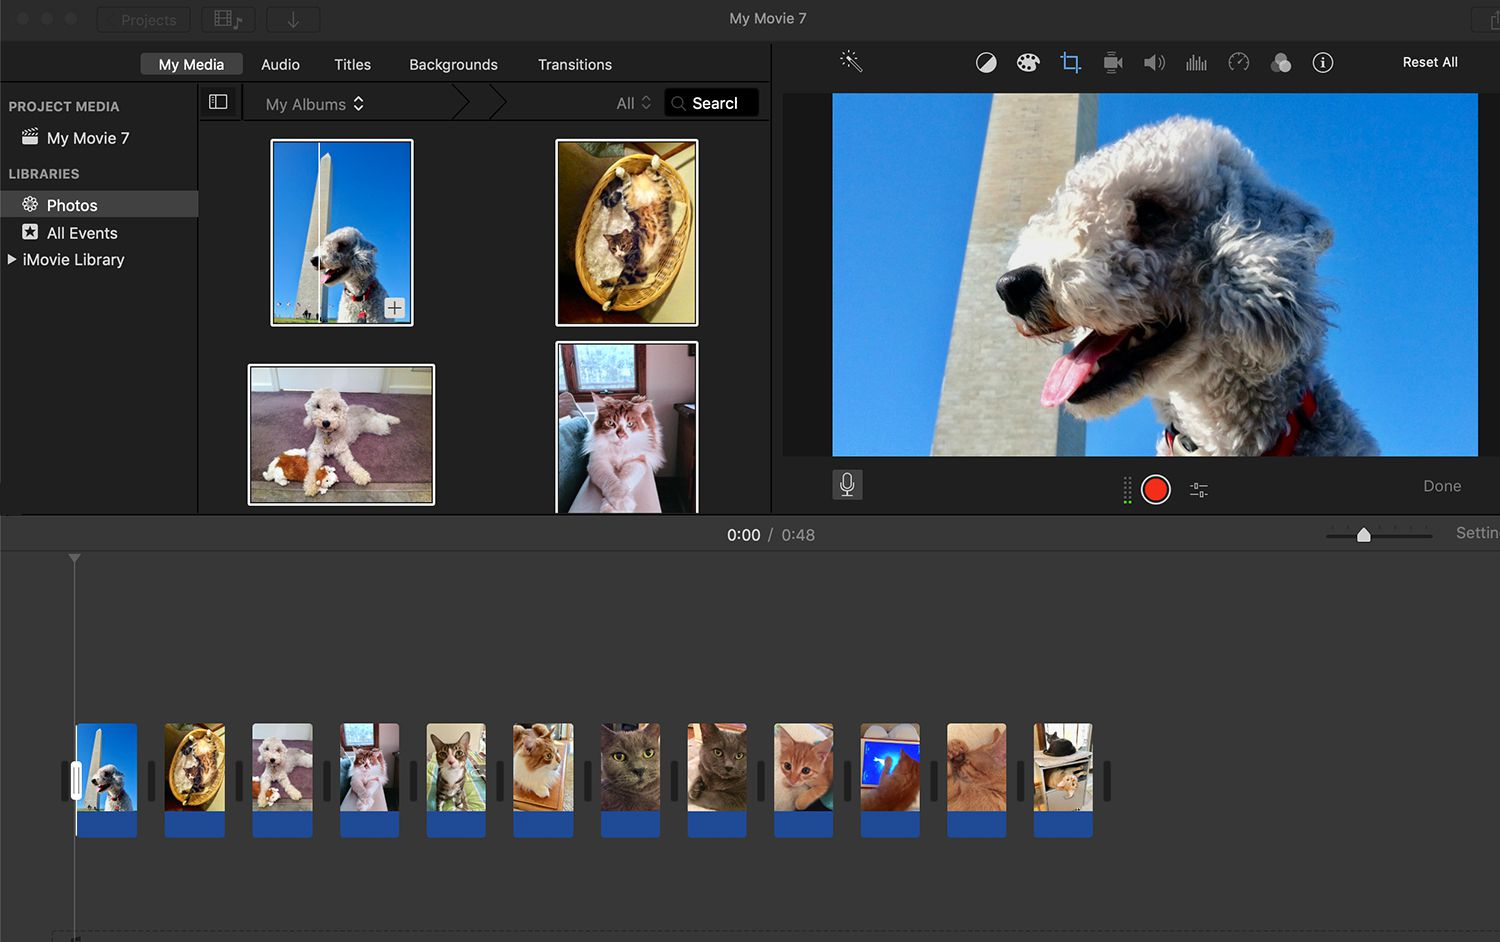 Adding images to the iMove timeline